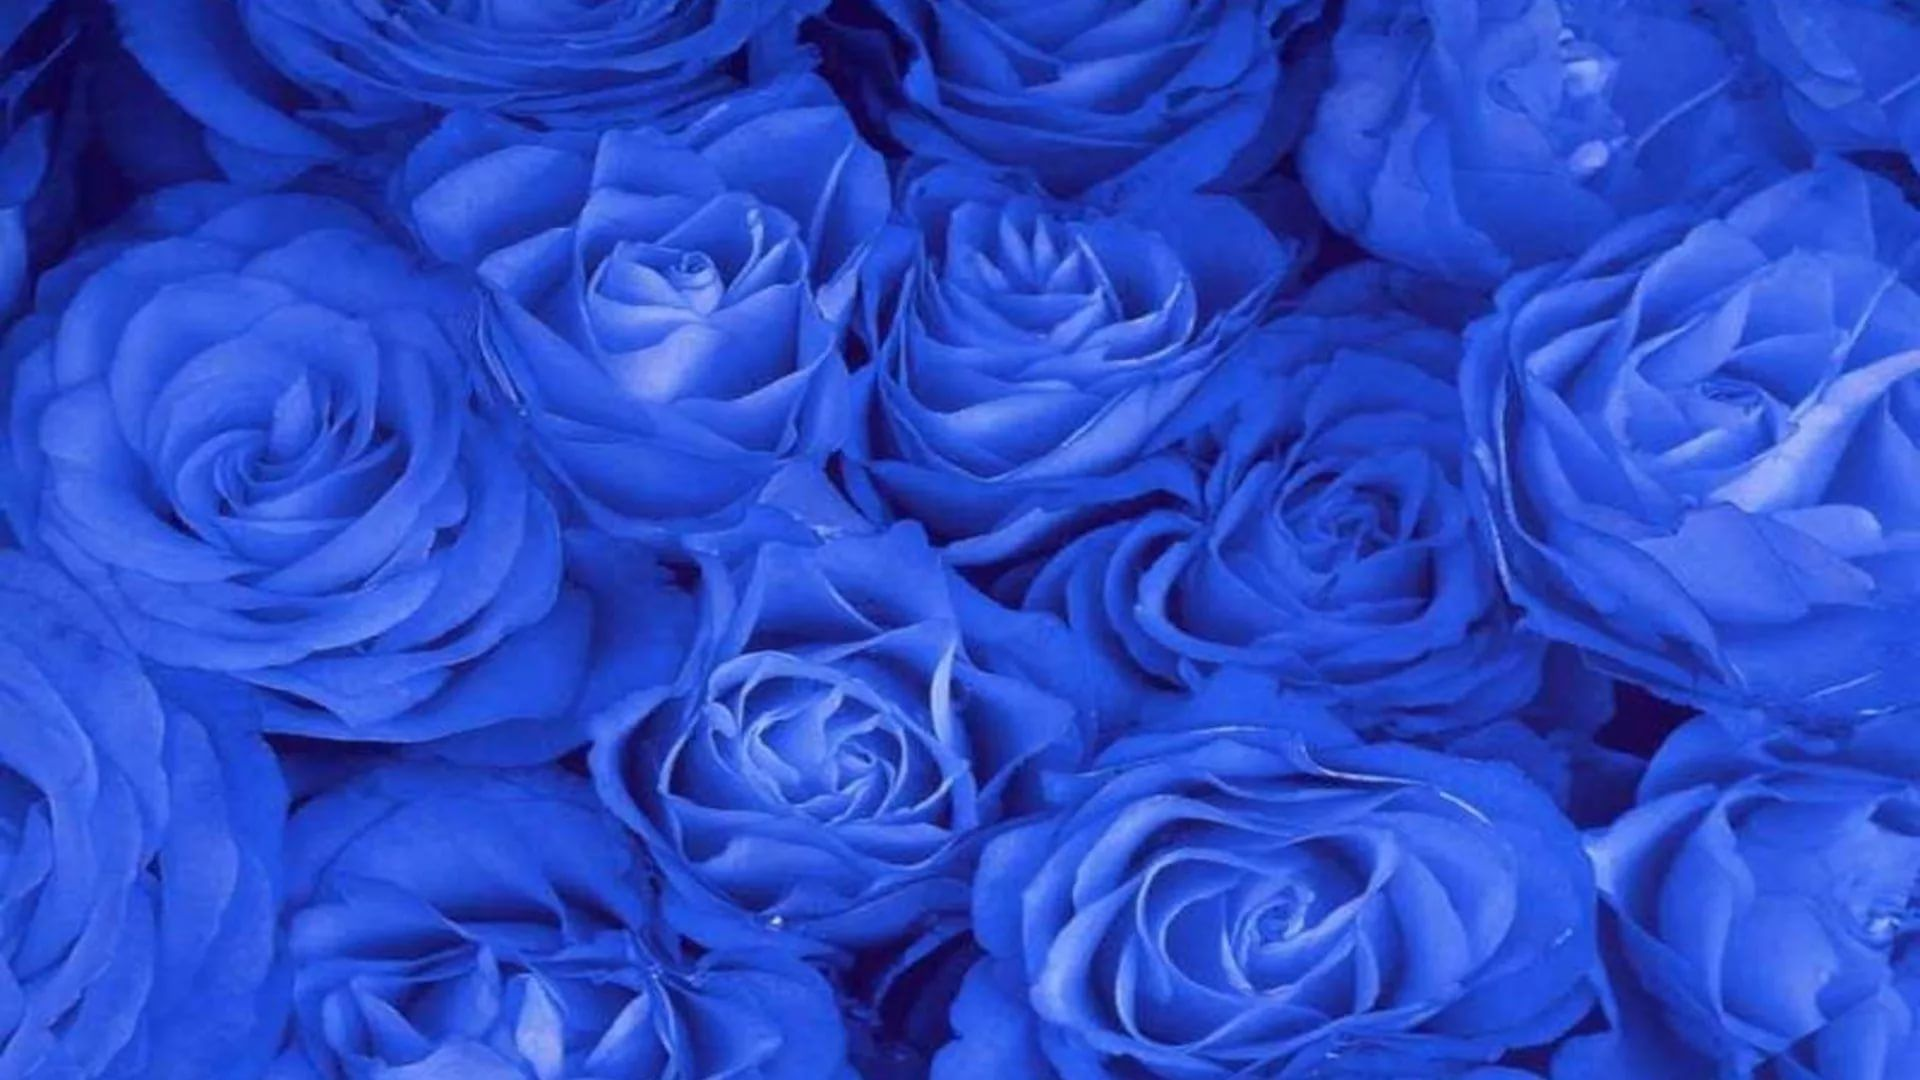 Blue Rose Good Wallpaper